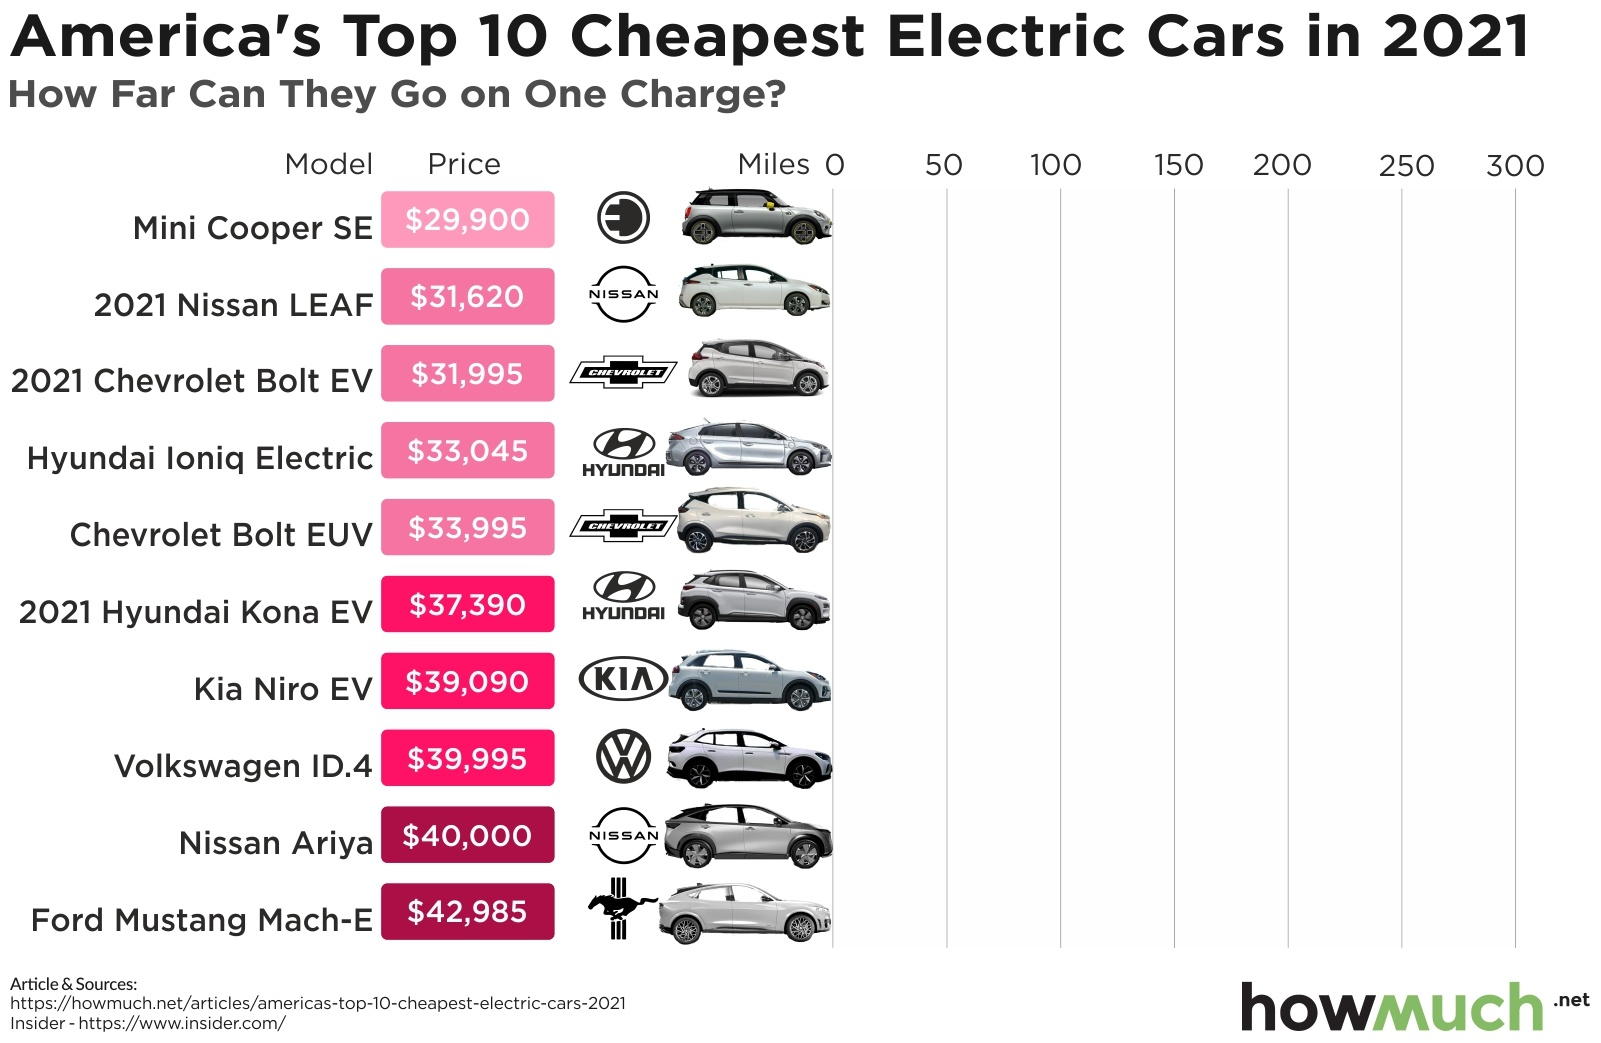 How Far Can America's Top 10 Cheapest Electric Cars Go On a Single Charge? GIF